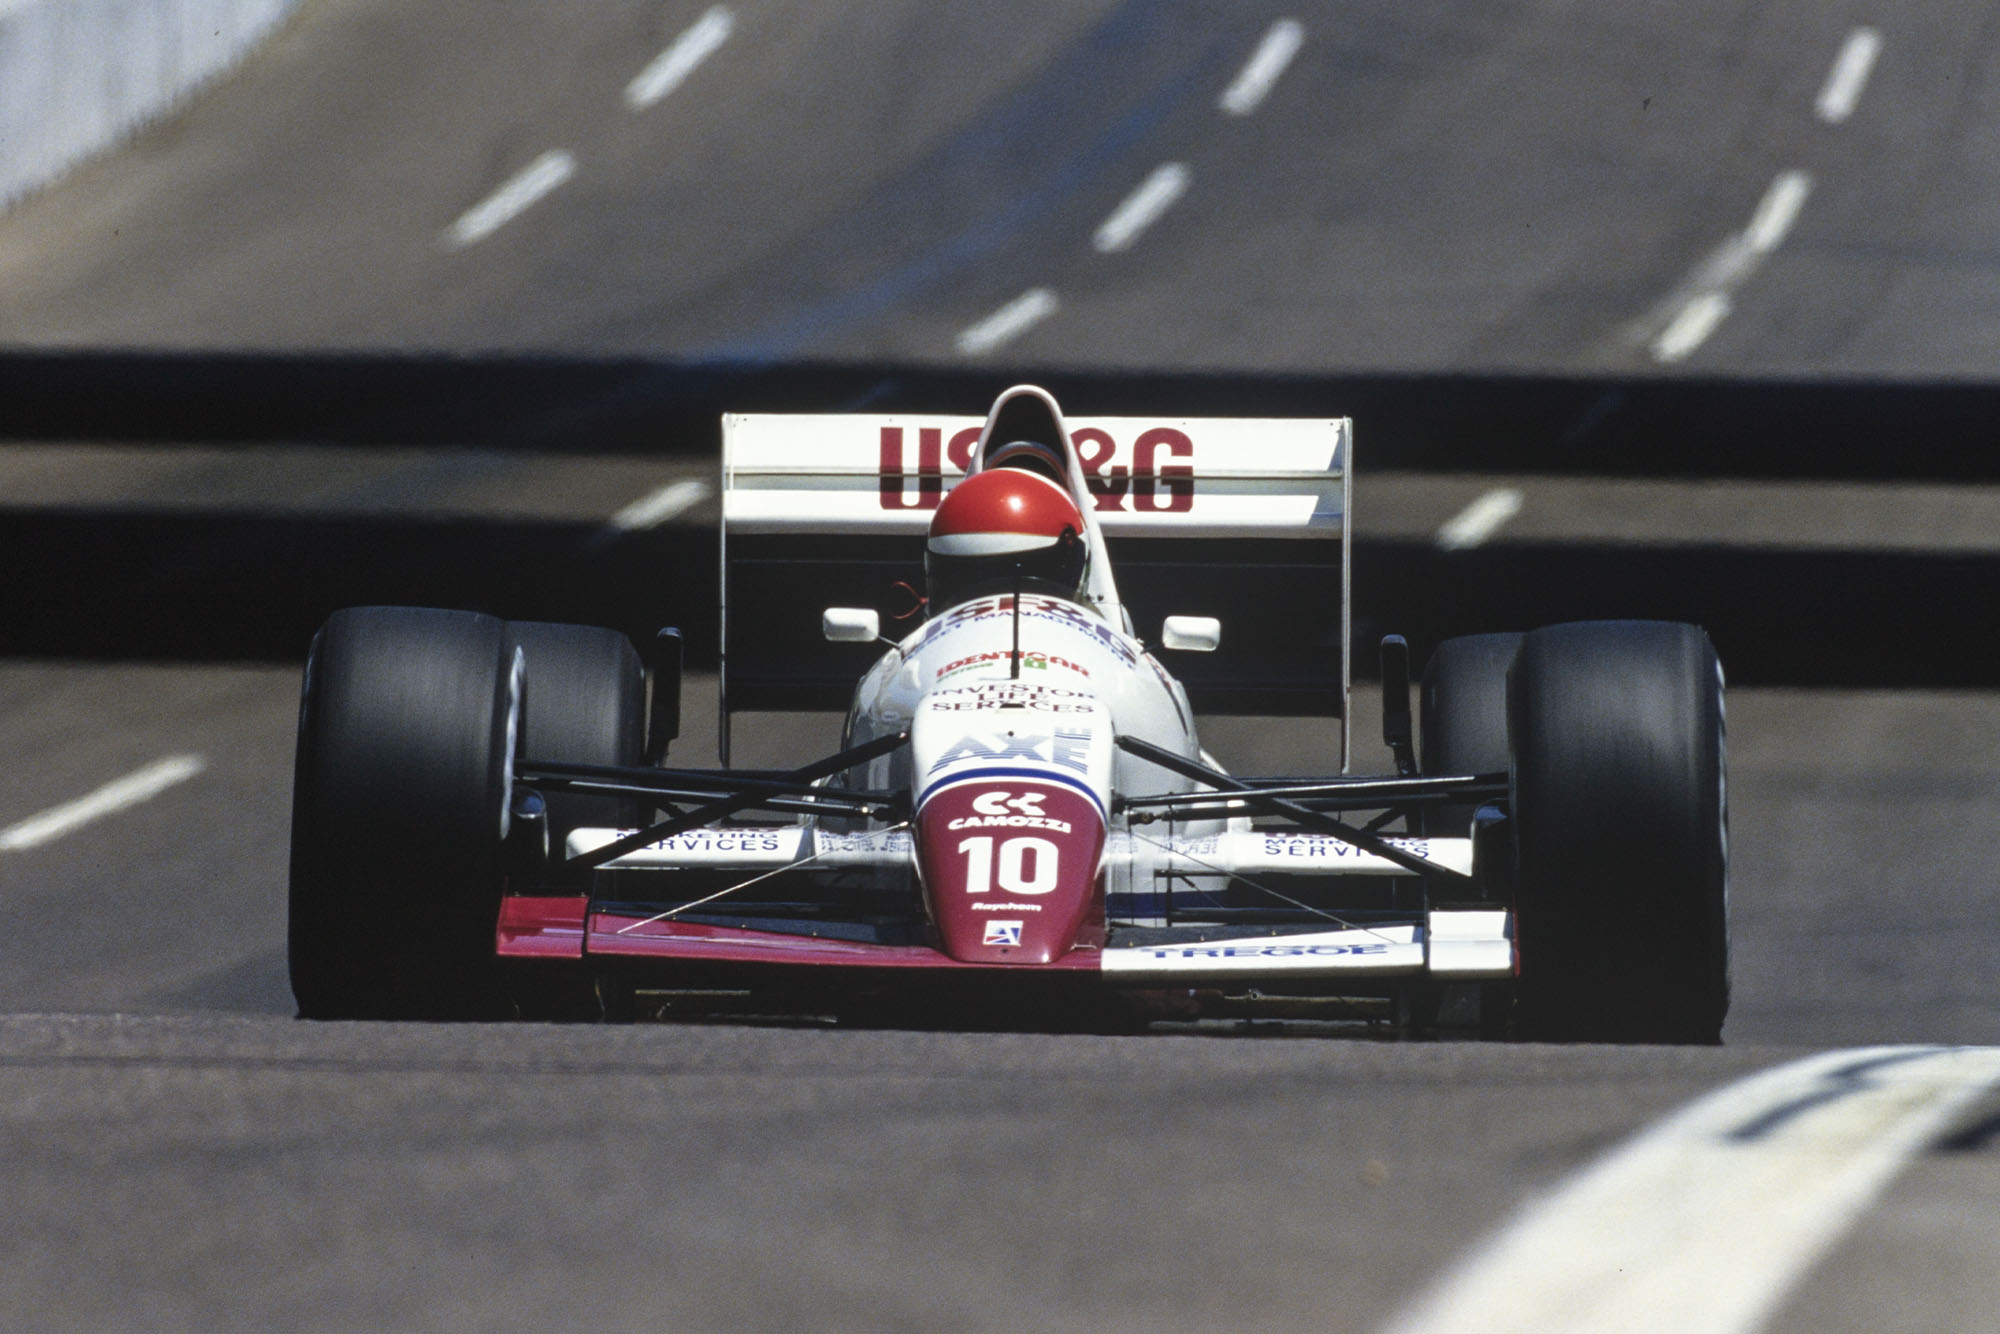 1989 US GP Cheever3rd